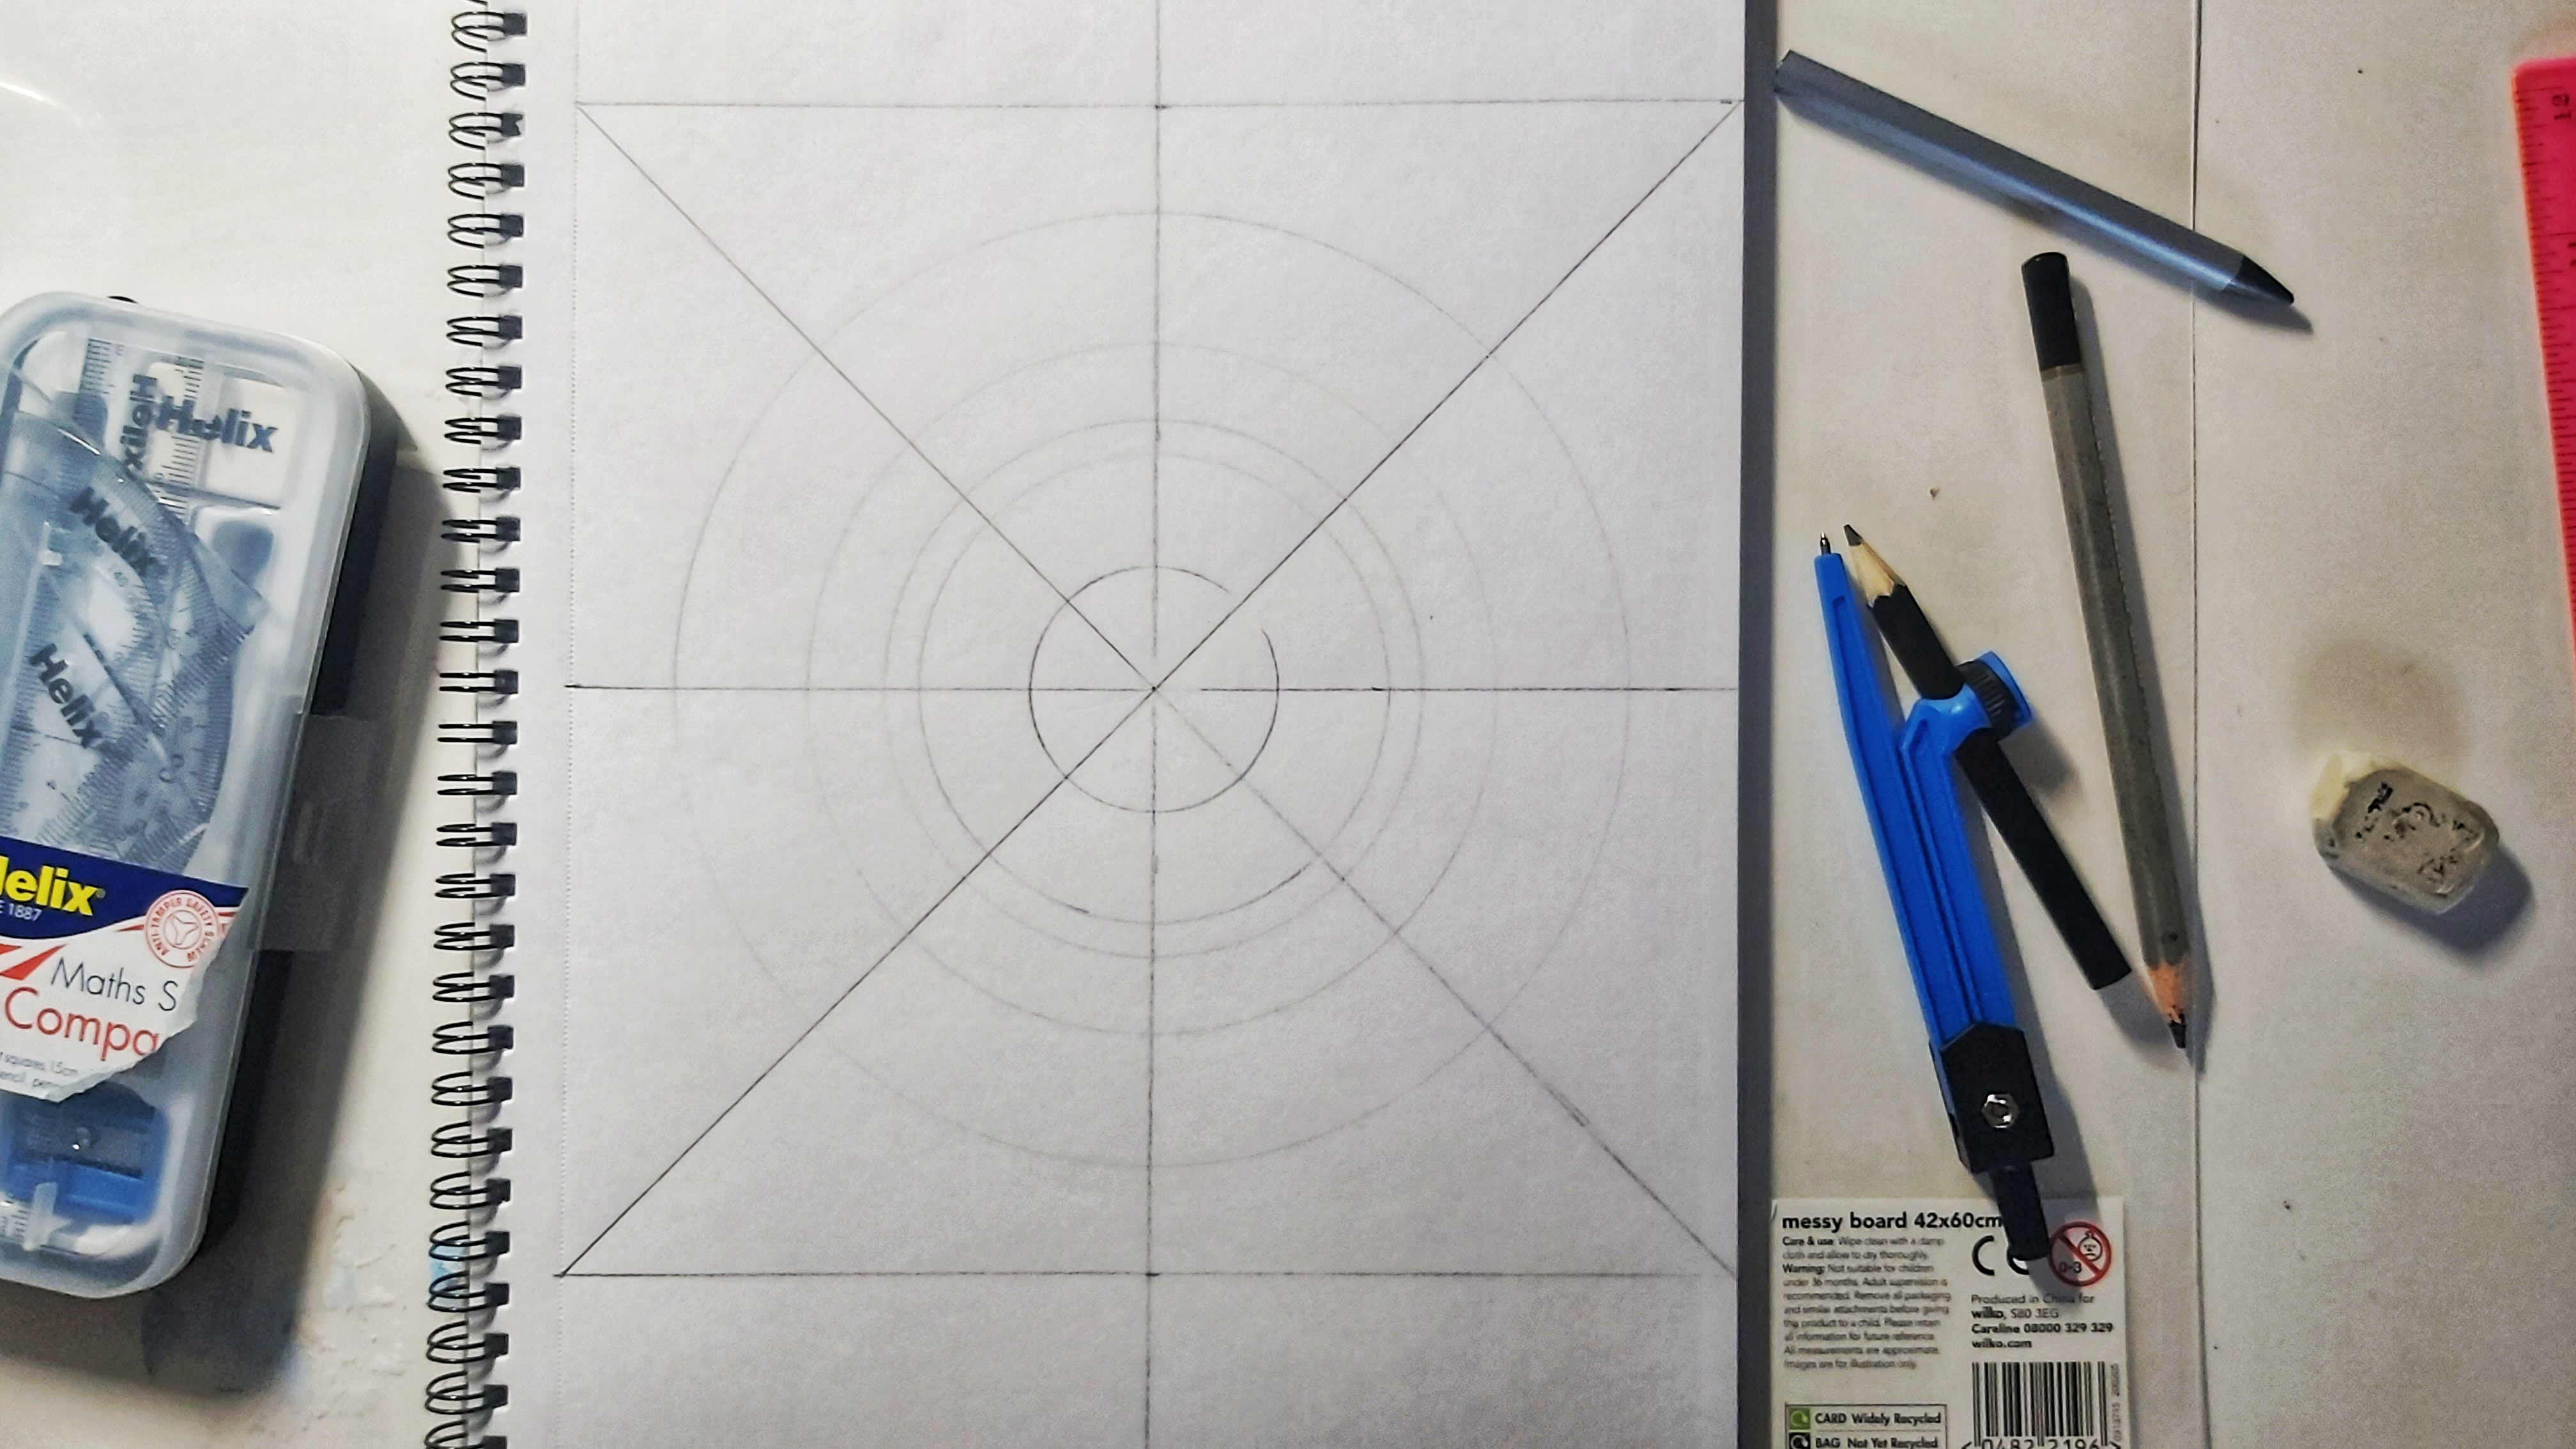 A square divided into 8 pieces and a few circles, pencil